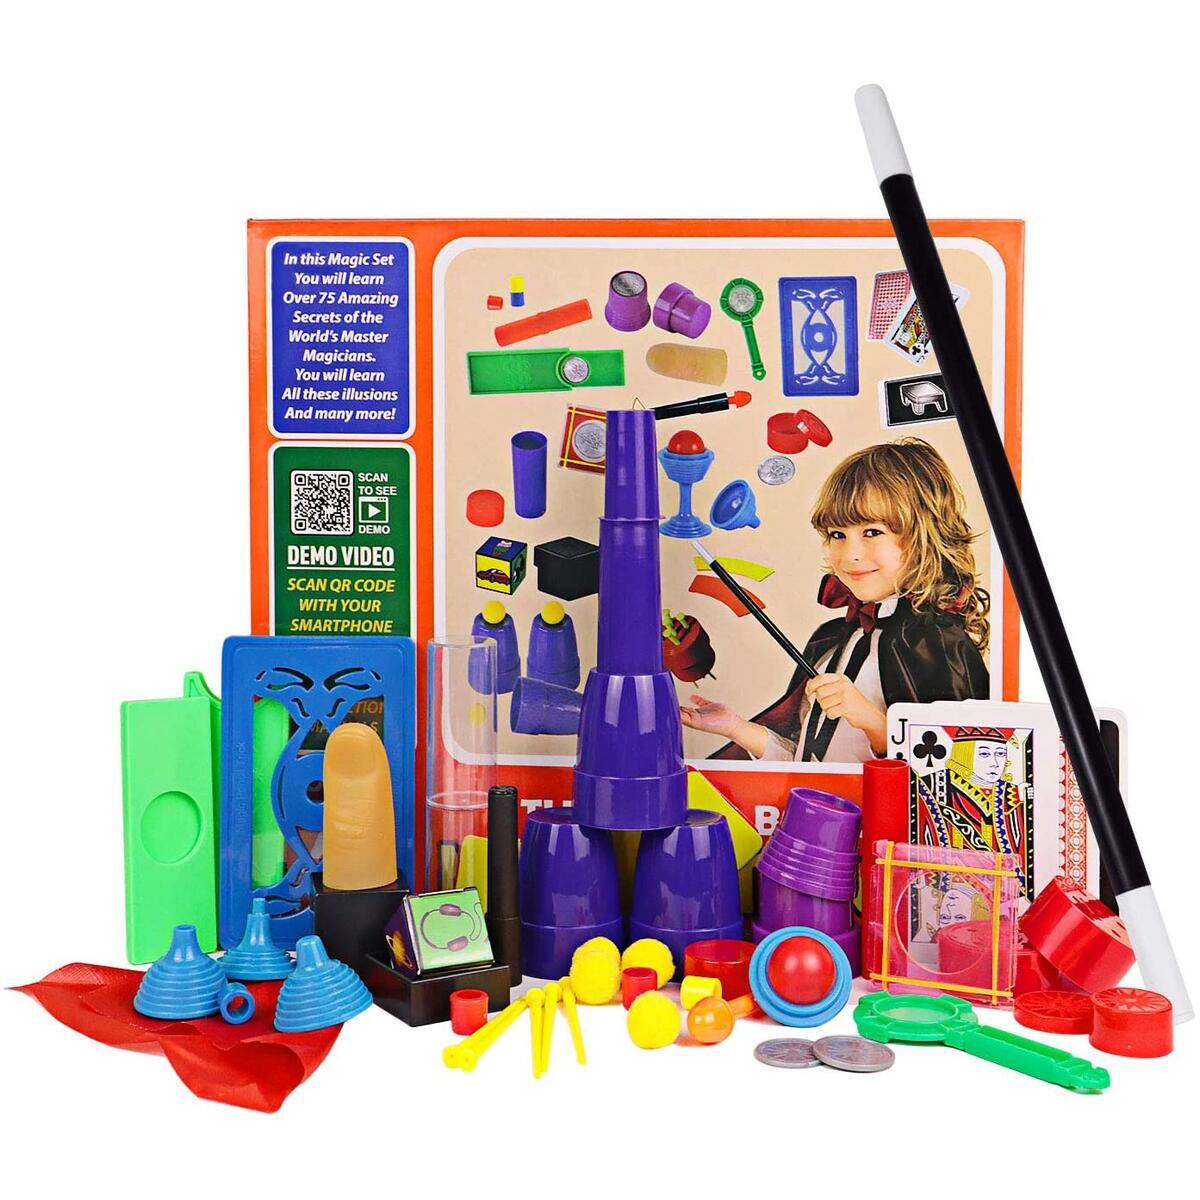 HAPTIME Magic Tricks Kit for Beginners, Little Magician Illusions Deck Performance, Secrets of Levitation by Magic Maker, Children's Game, Best Age for 4 5 6 7 8 9 10 Year Old Kids Boys Girls